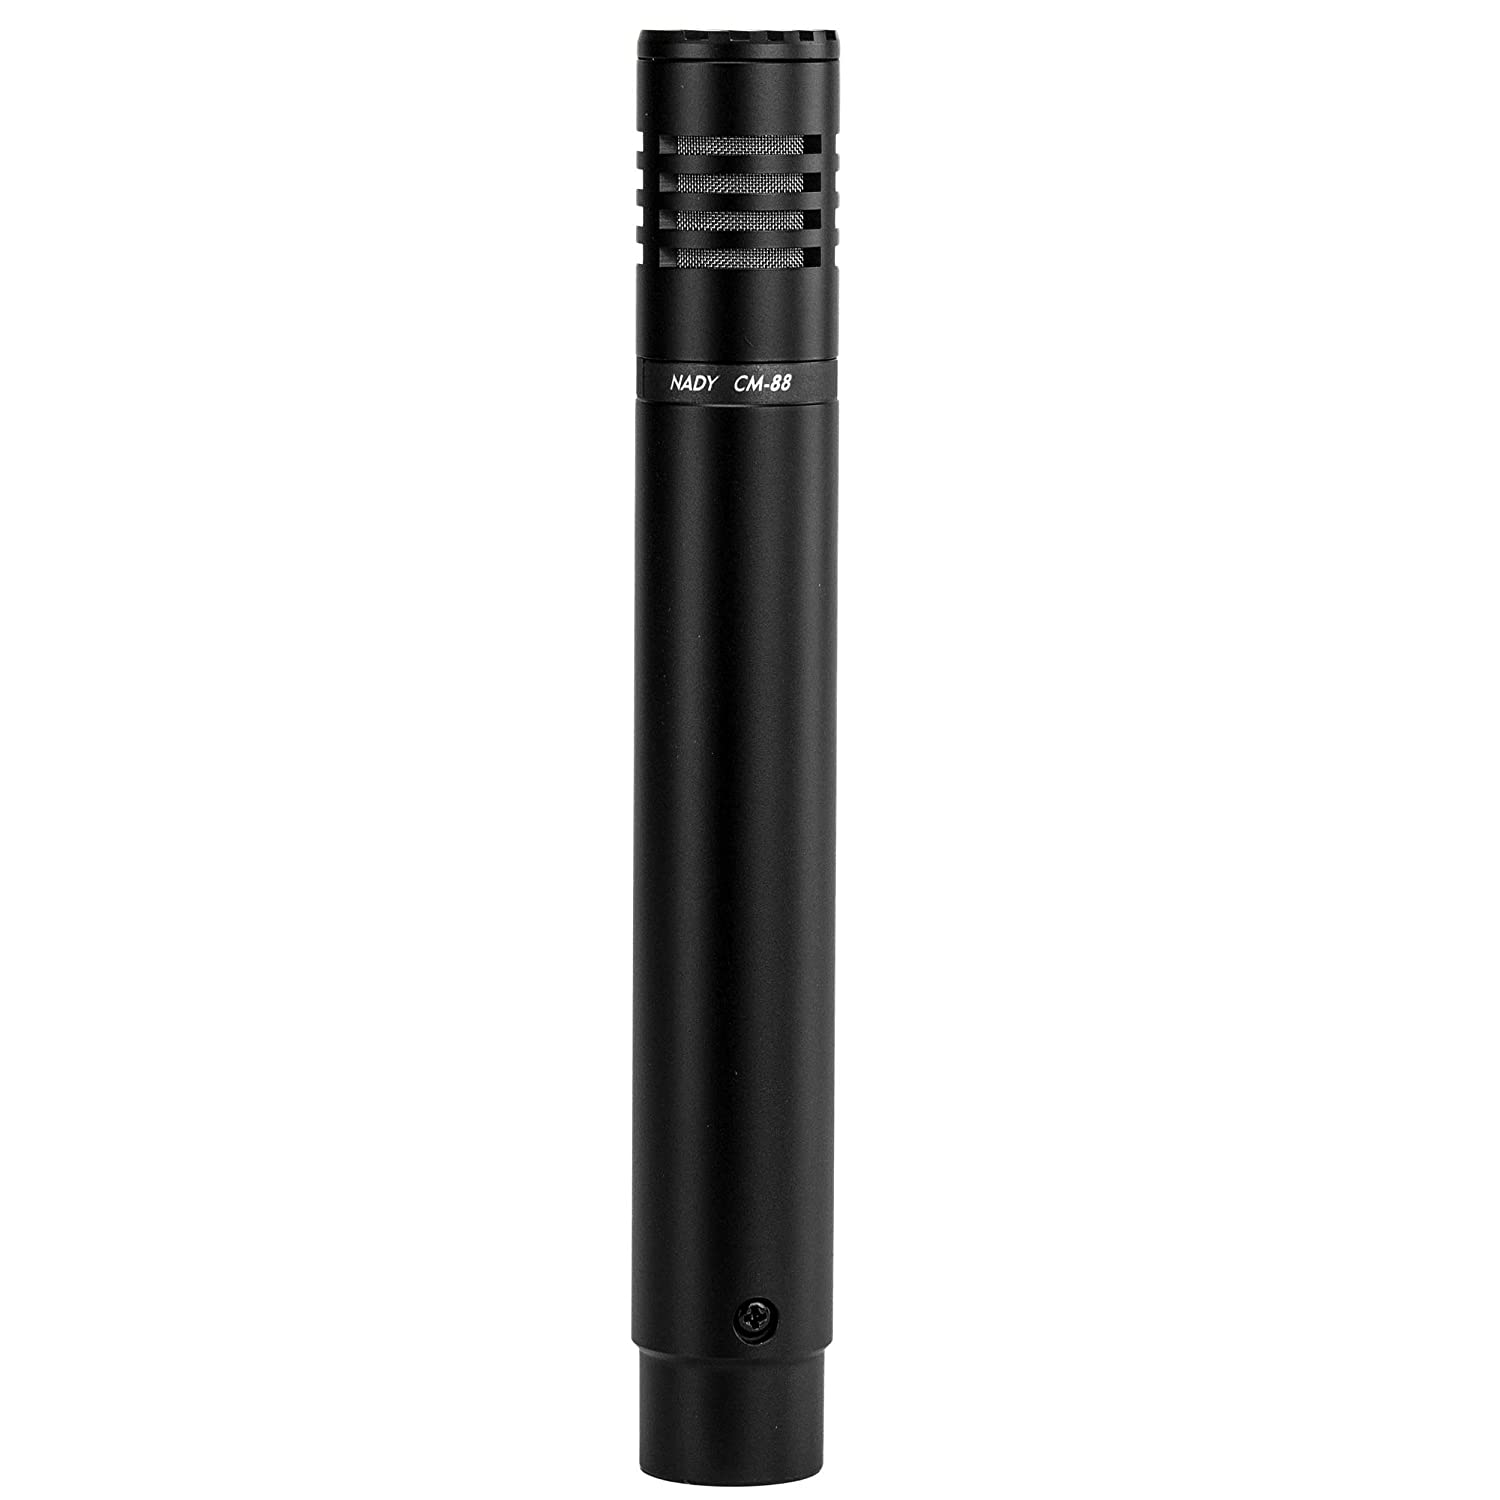 Nady DM-80 Drum Microphone - Enhanced low frequency response for kick drums, Neodymium element, all-metal construction and rubber mount to minimize vibration 10764220